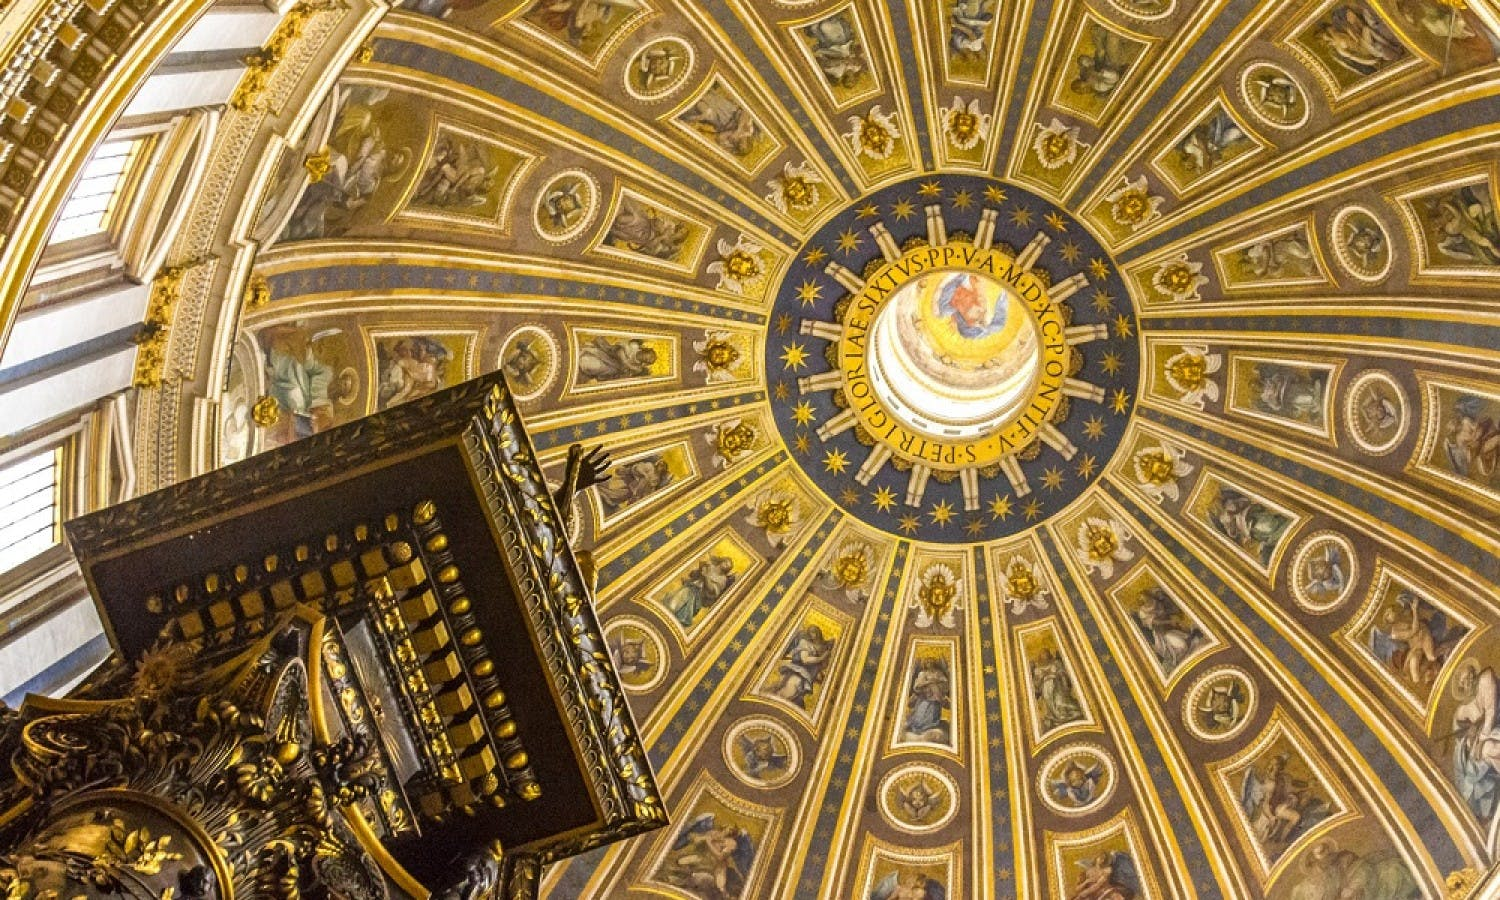 Saint Peter's Basilica self guided tour with fast-track entrance